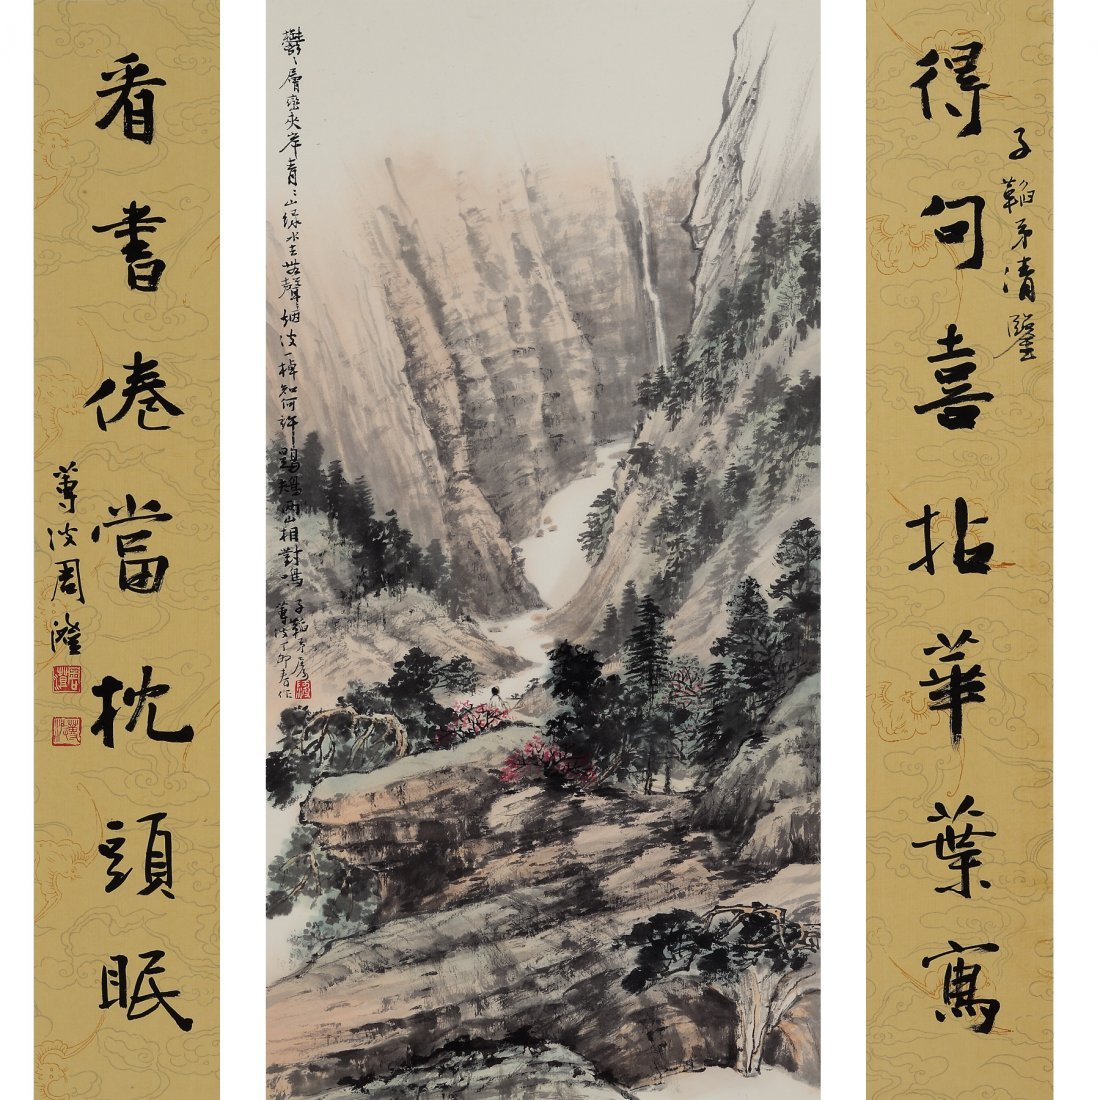 LANDSCAPE AND CALLIGRAPHY COUPLET BY ZHOU CHENG